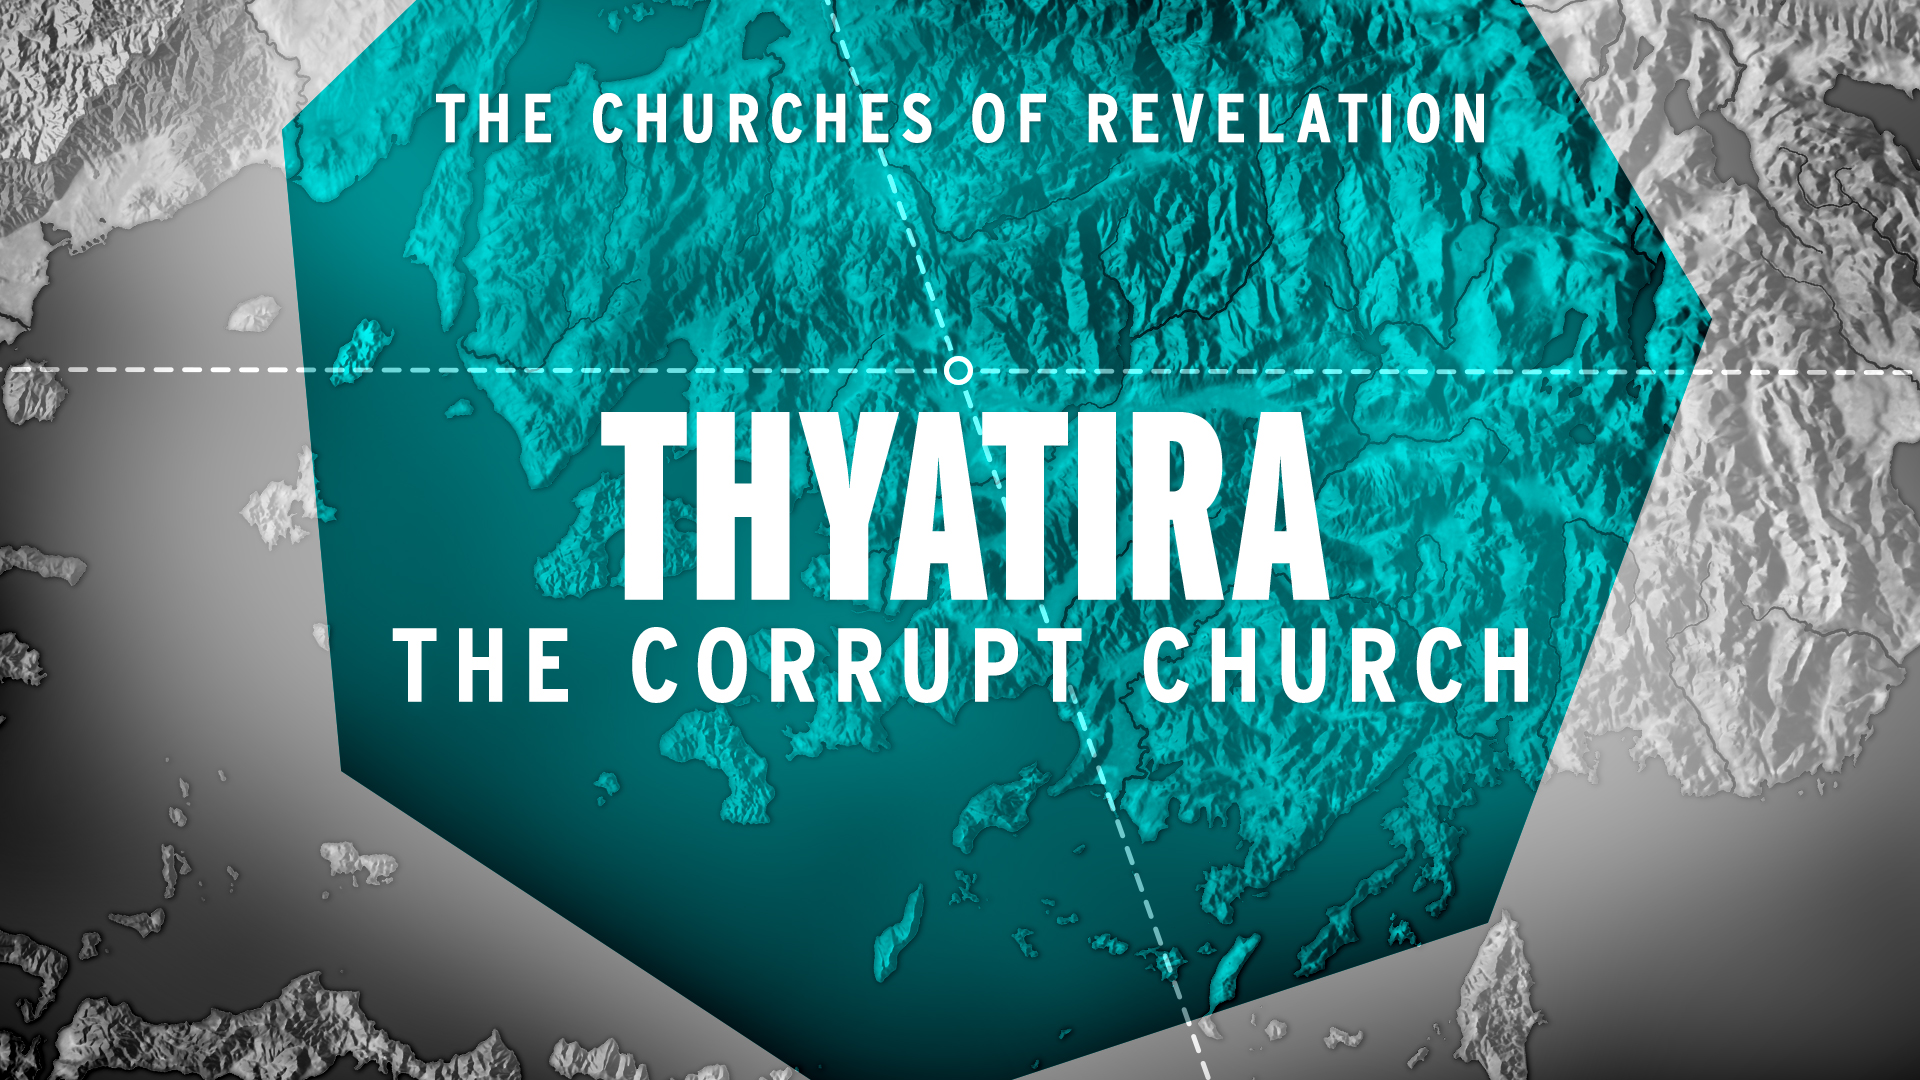 the-churches-of-revelation-thyatira-the-corrupt-church.jpg